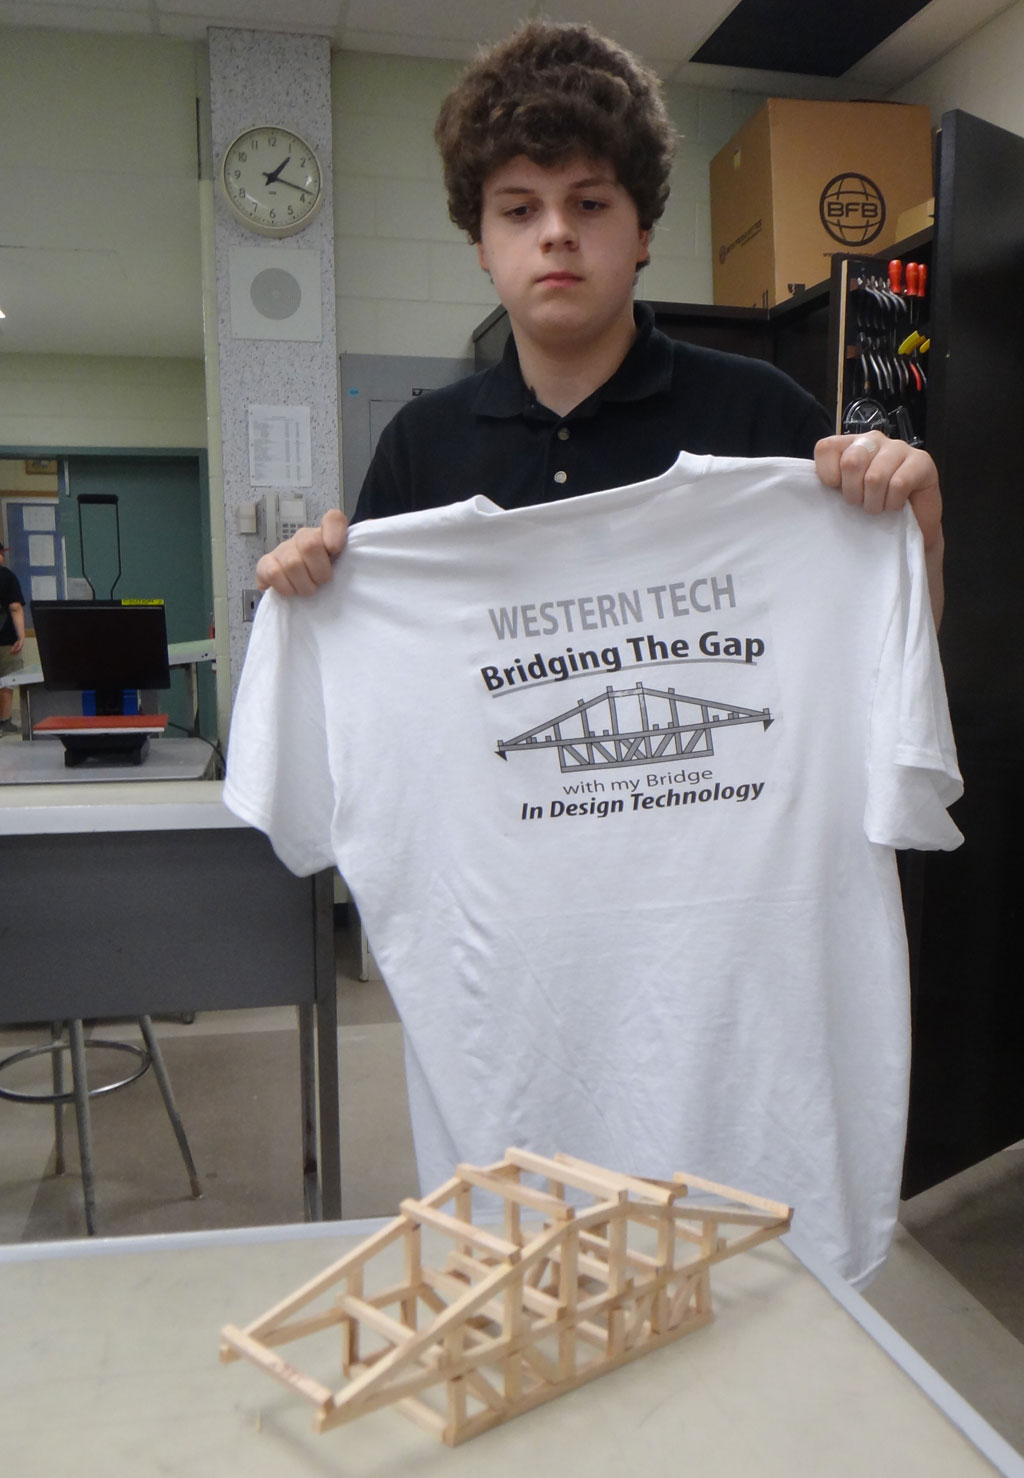 Western technical commercial school may 15 2012 for Heat pressed t shirts